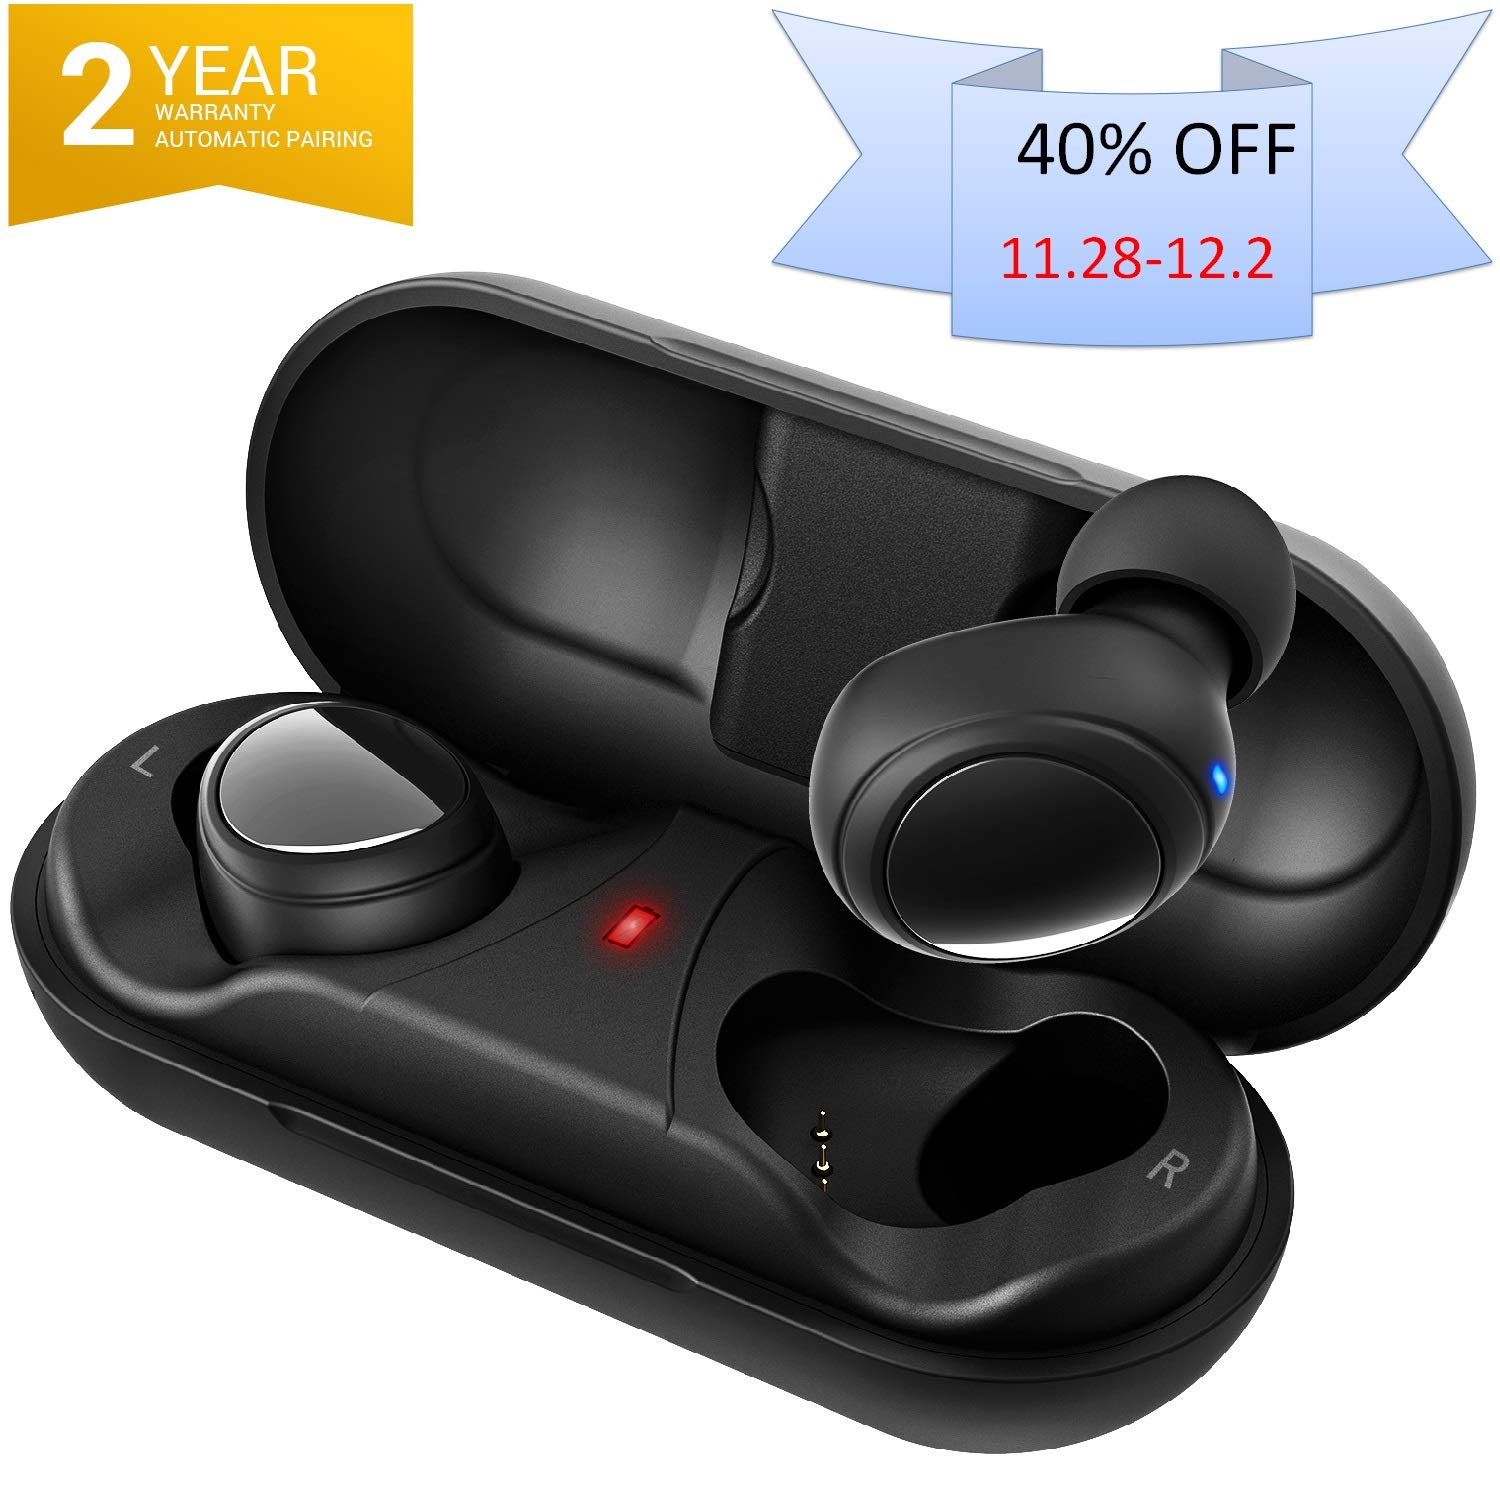 2019 Newly True Wireless Earbuds Bluetooth 5.0 Headphones, Sports in-Ear TWS 3D Stereo Sound Earphones 6-8 Hours Playtime 24H Playtime with Charging case